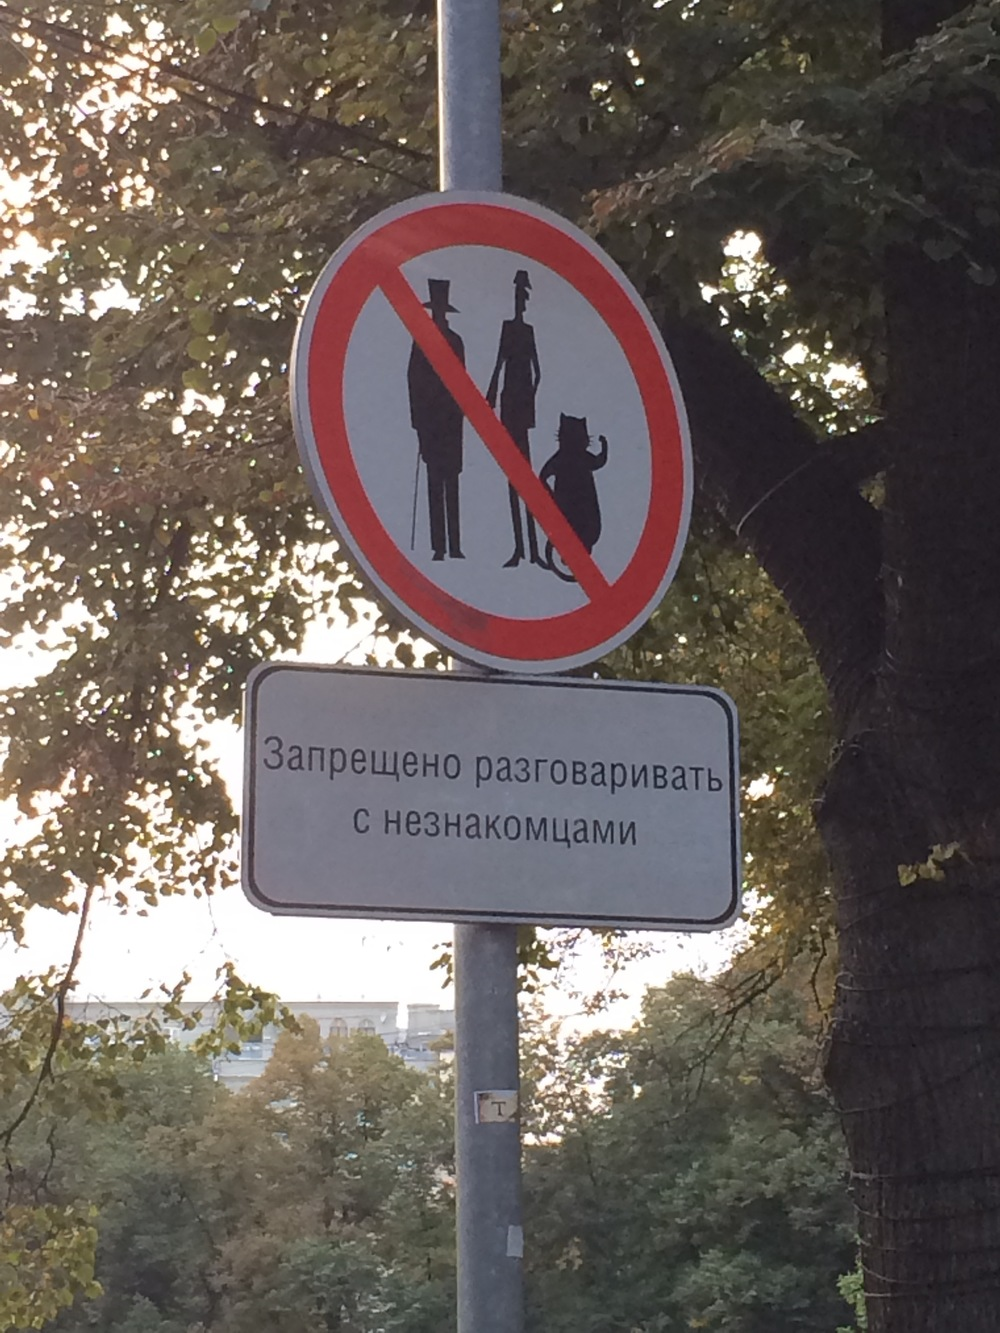 """""""Speaking with strangers is forbidden"""" in Patriarch Ponds."""